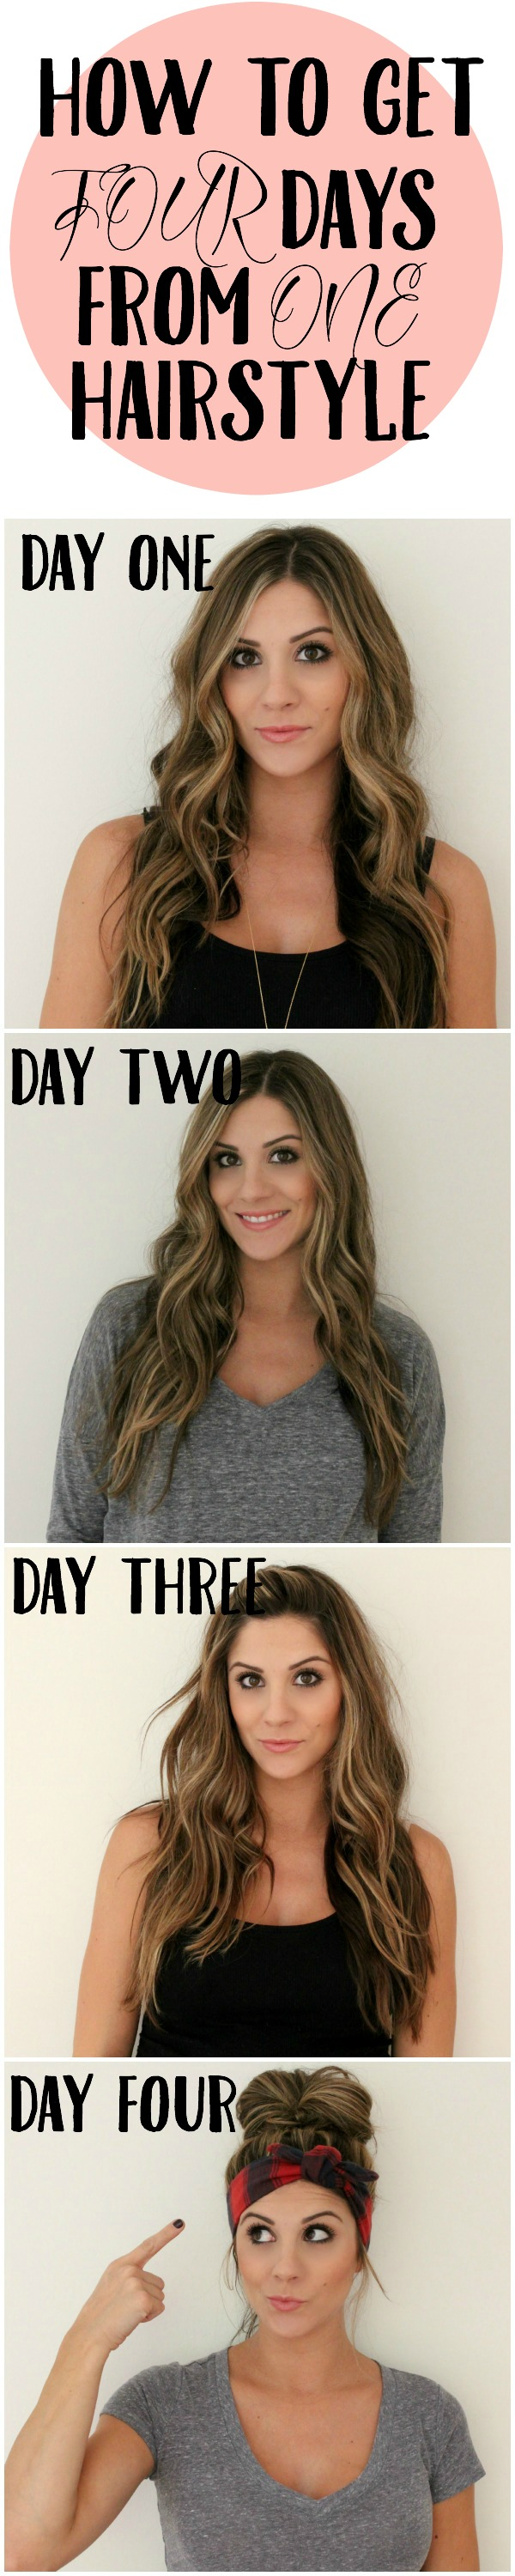 How to get four days from one hairstyle